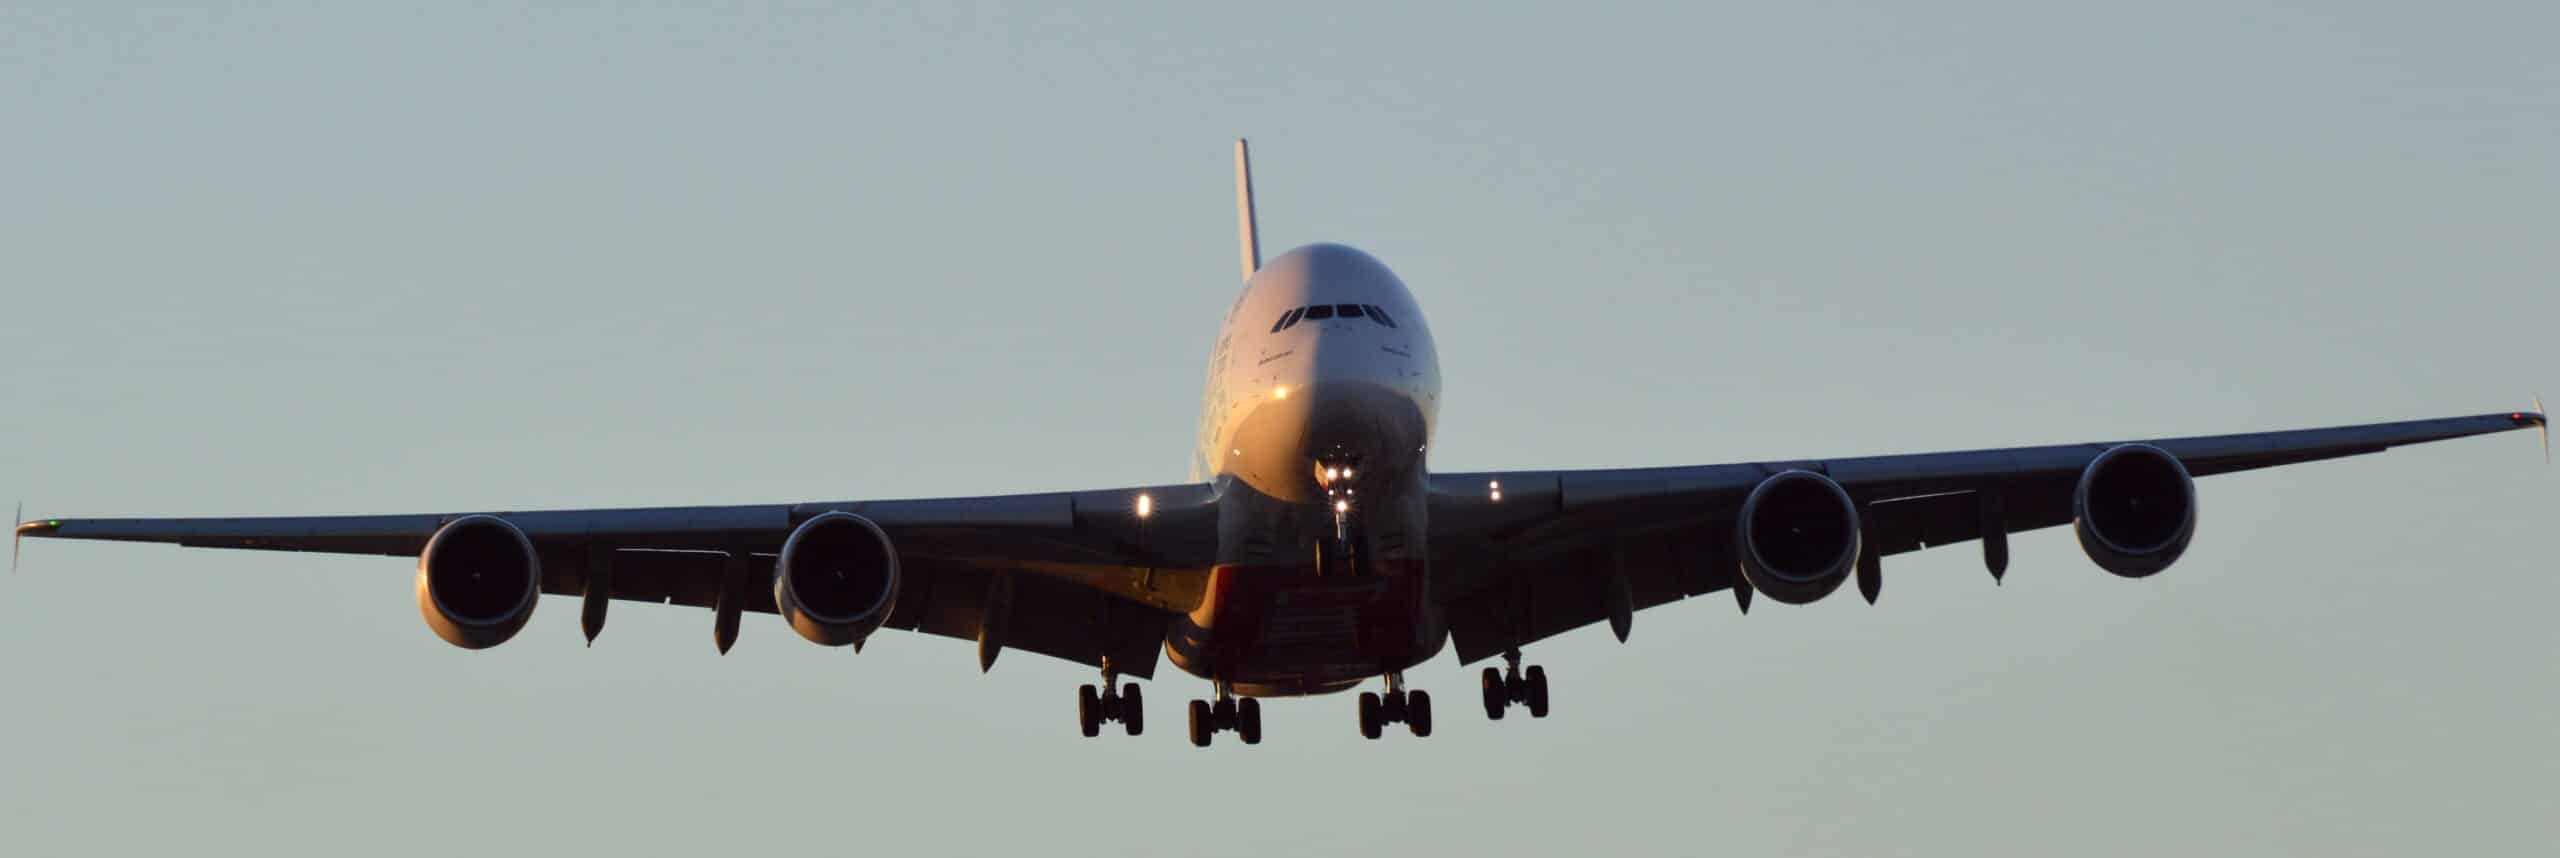 Picture Airbus A380-800 coming in to land